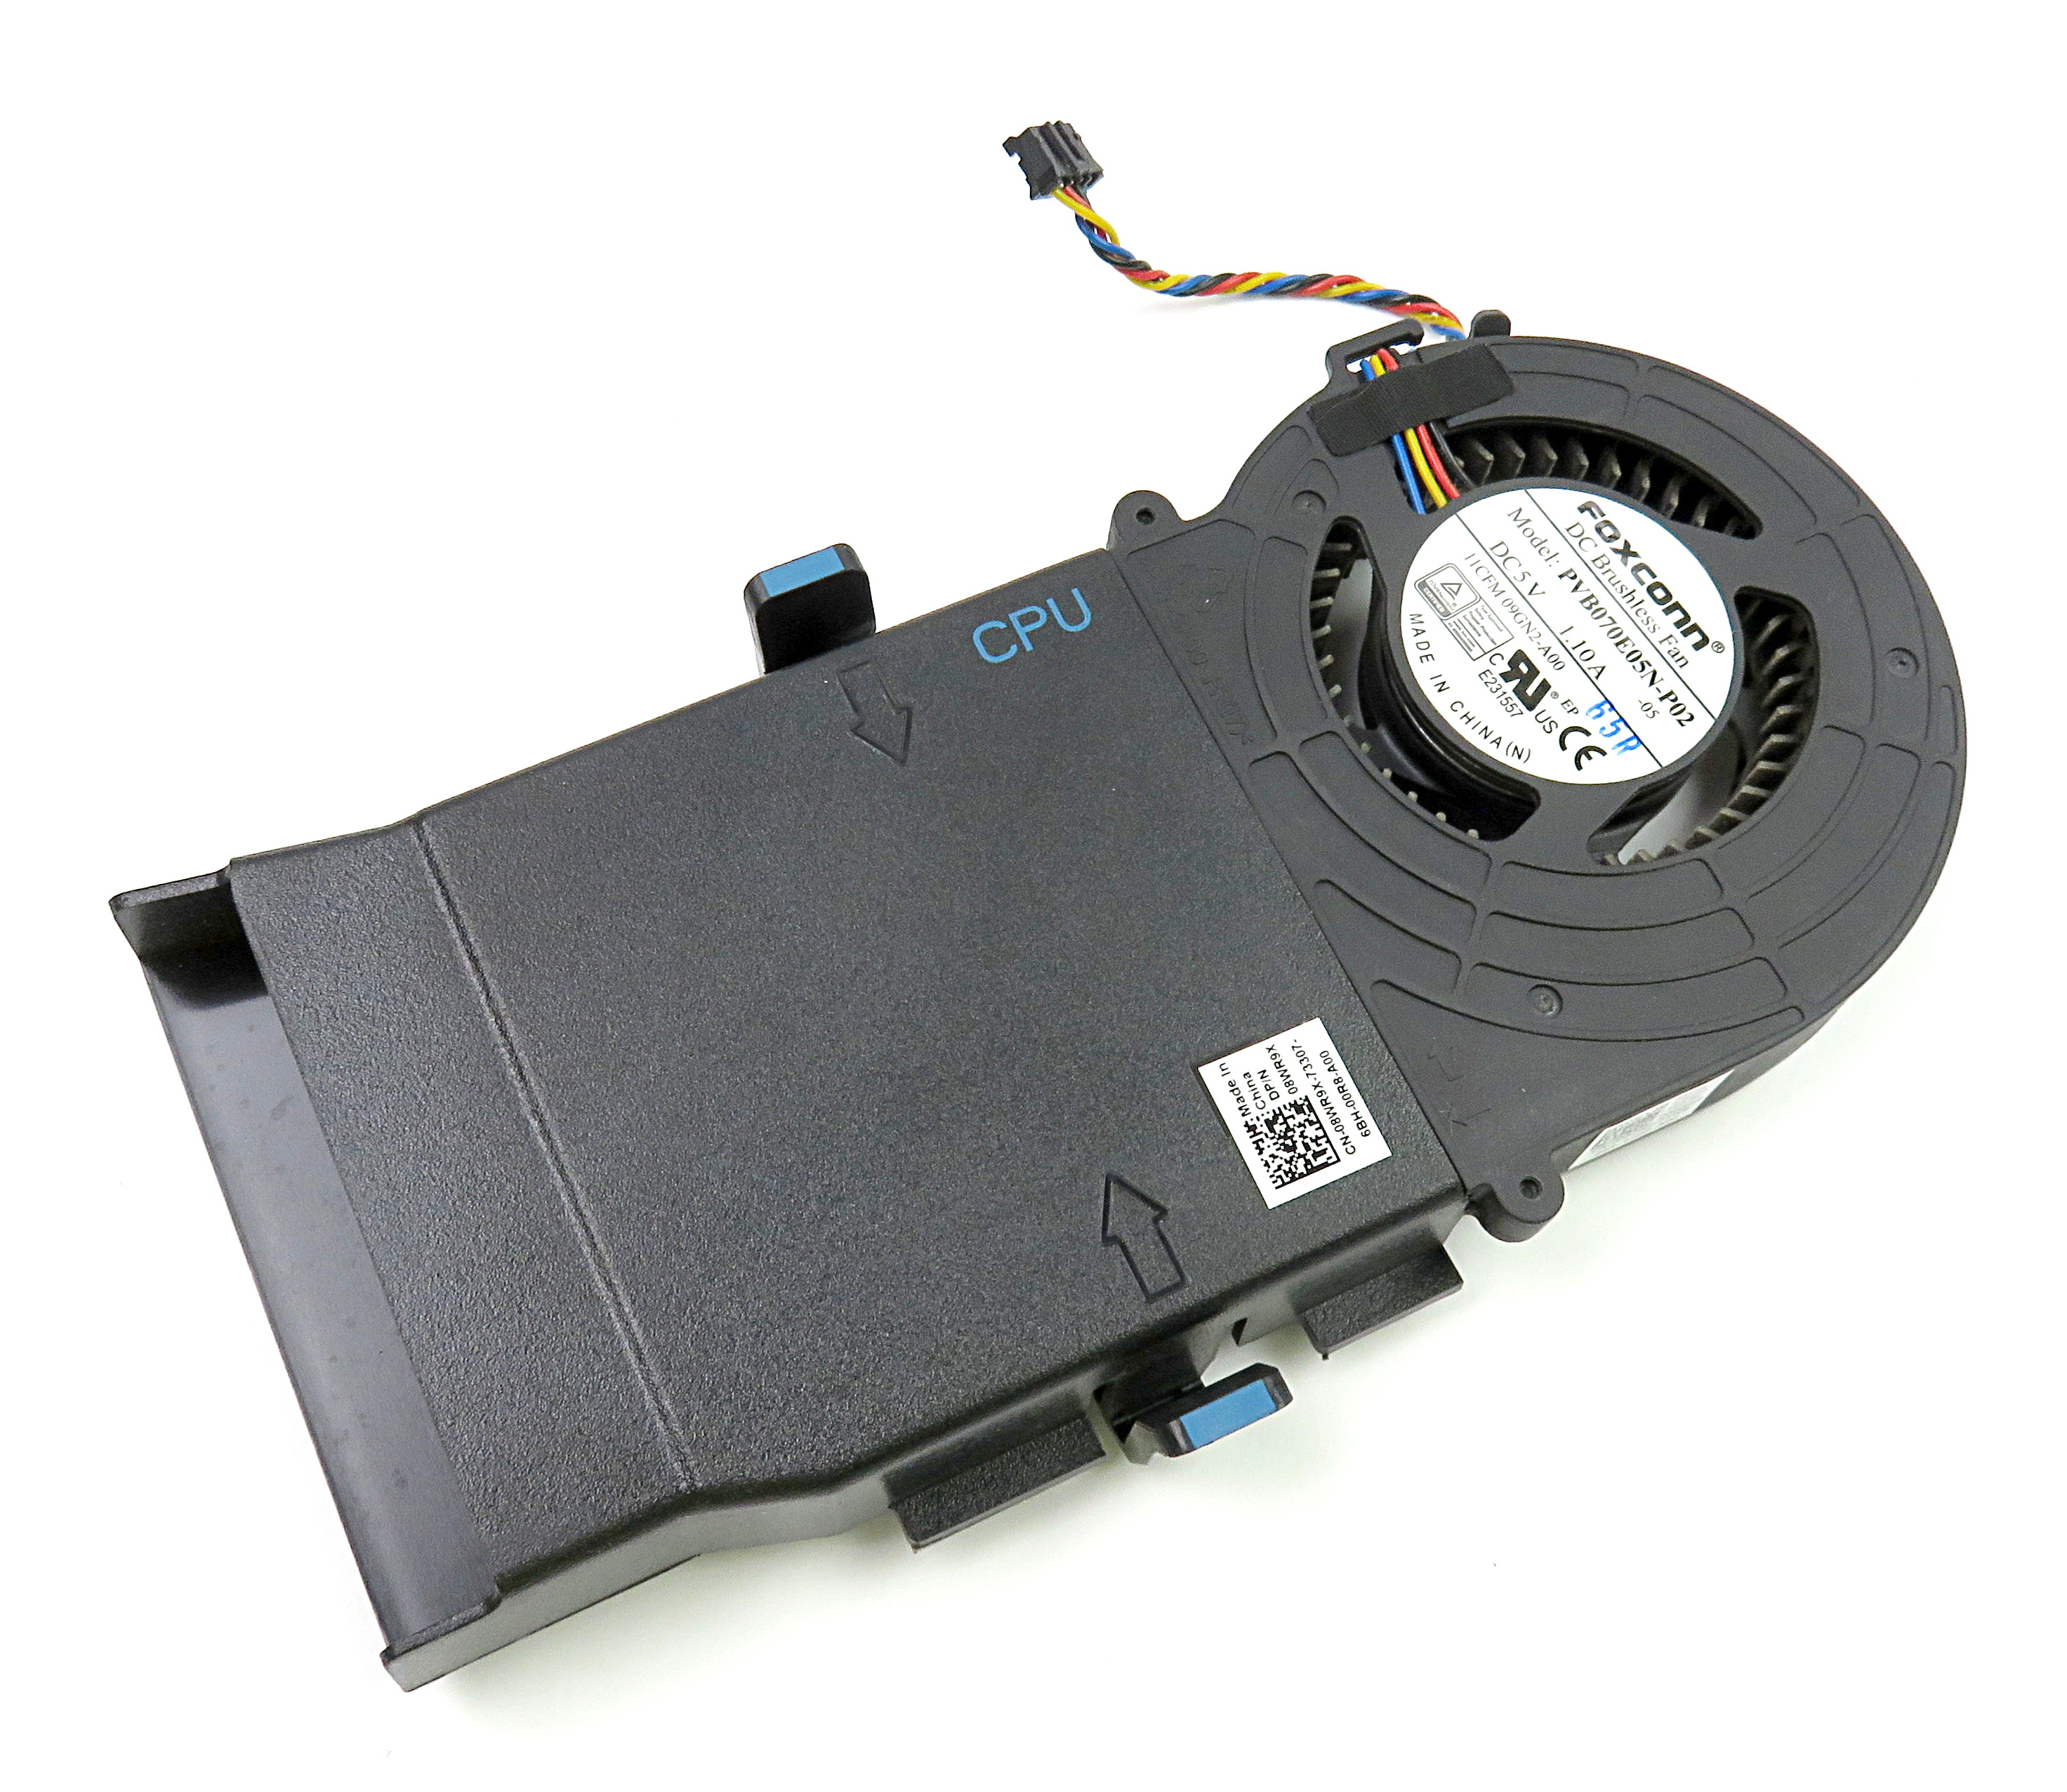 Dell 8WR9X CPU Shroud & Fan Cooling Assembly f/ Alienware Alpha D07U Gaming PC